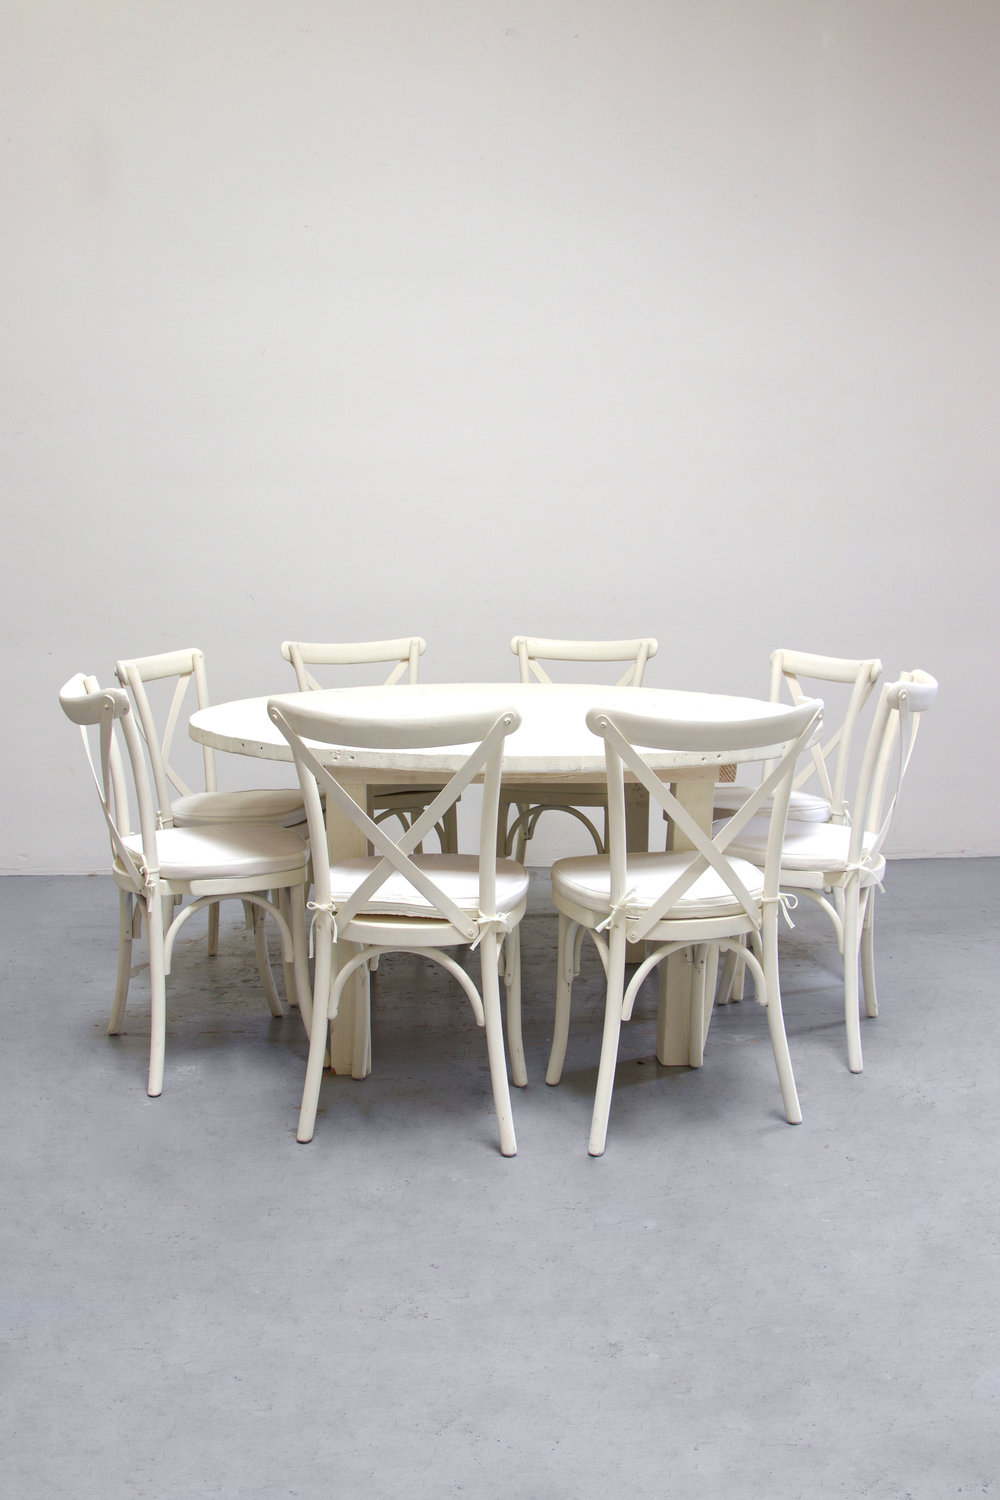 1 Round Vintage White Farm Table w/ 8 Cross-Back Chairs $145